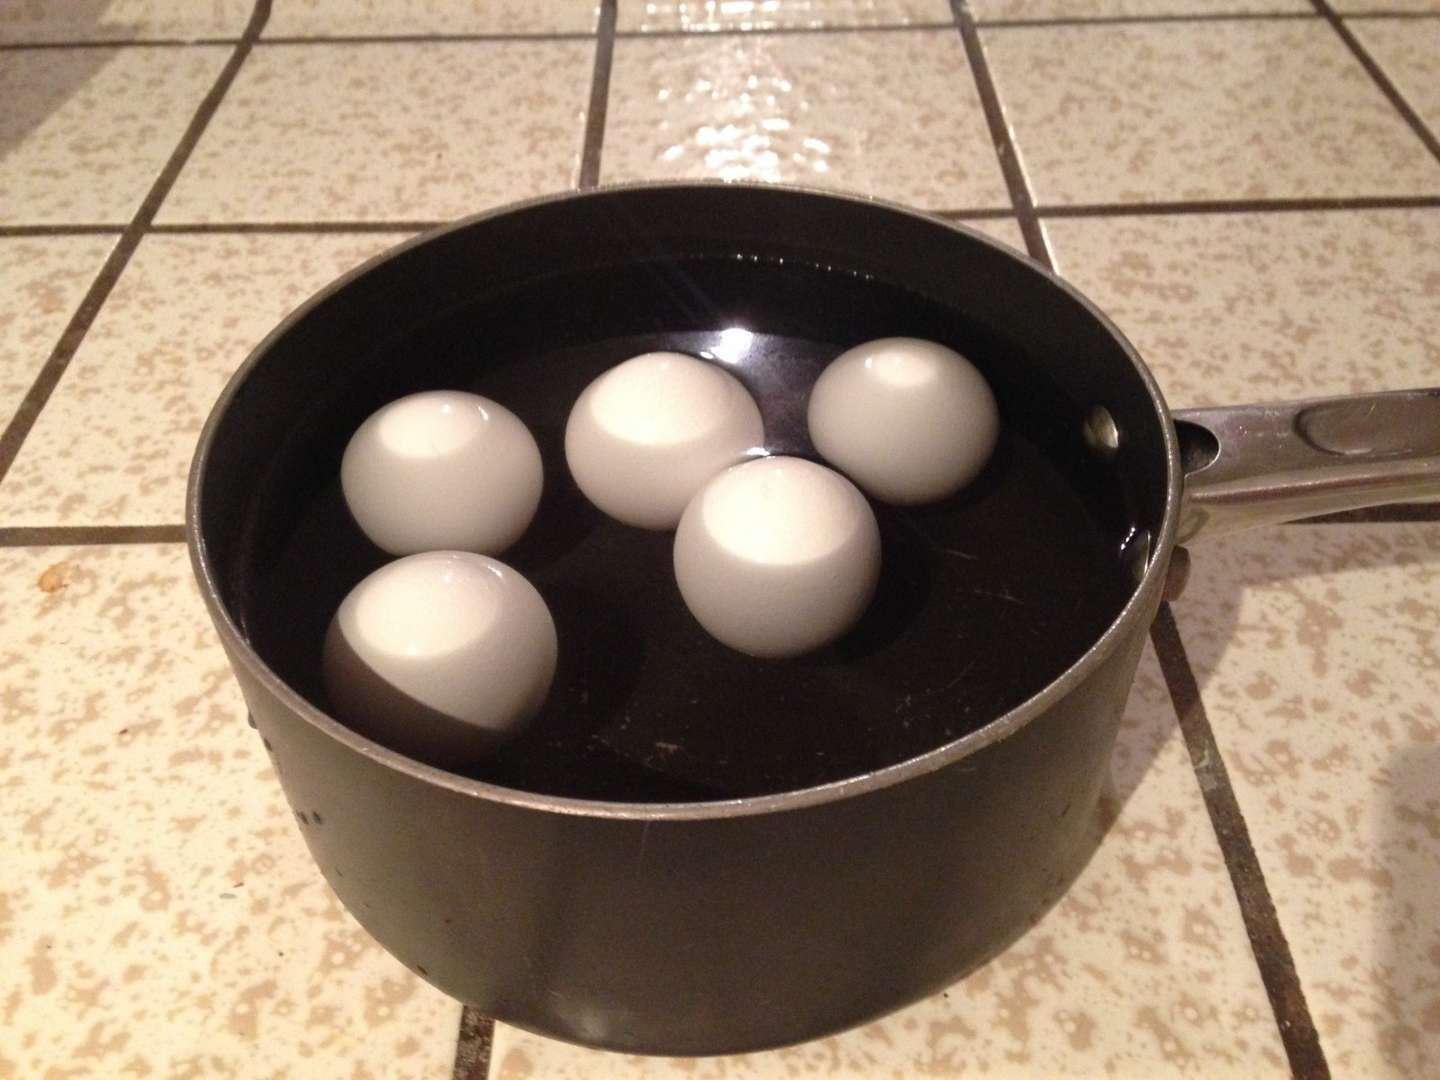 Place the eggs in a pot of water